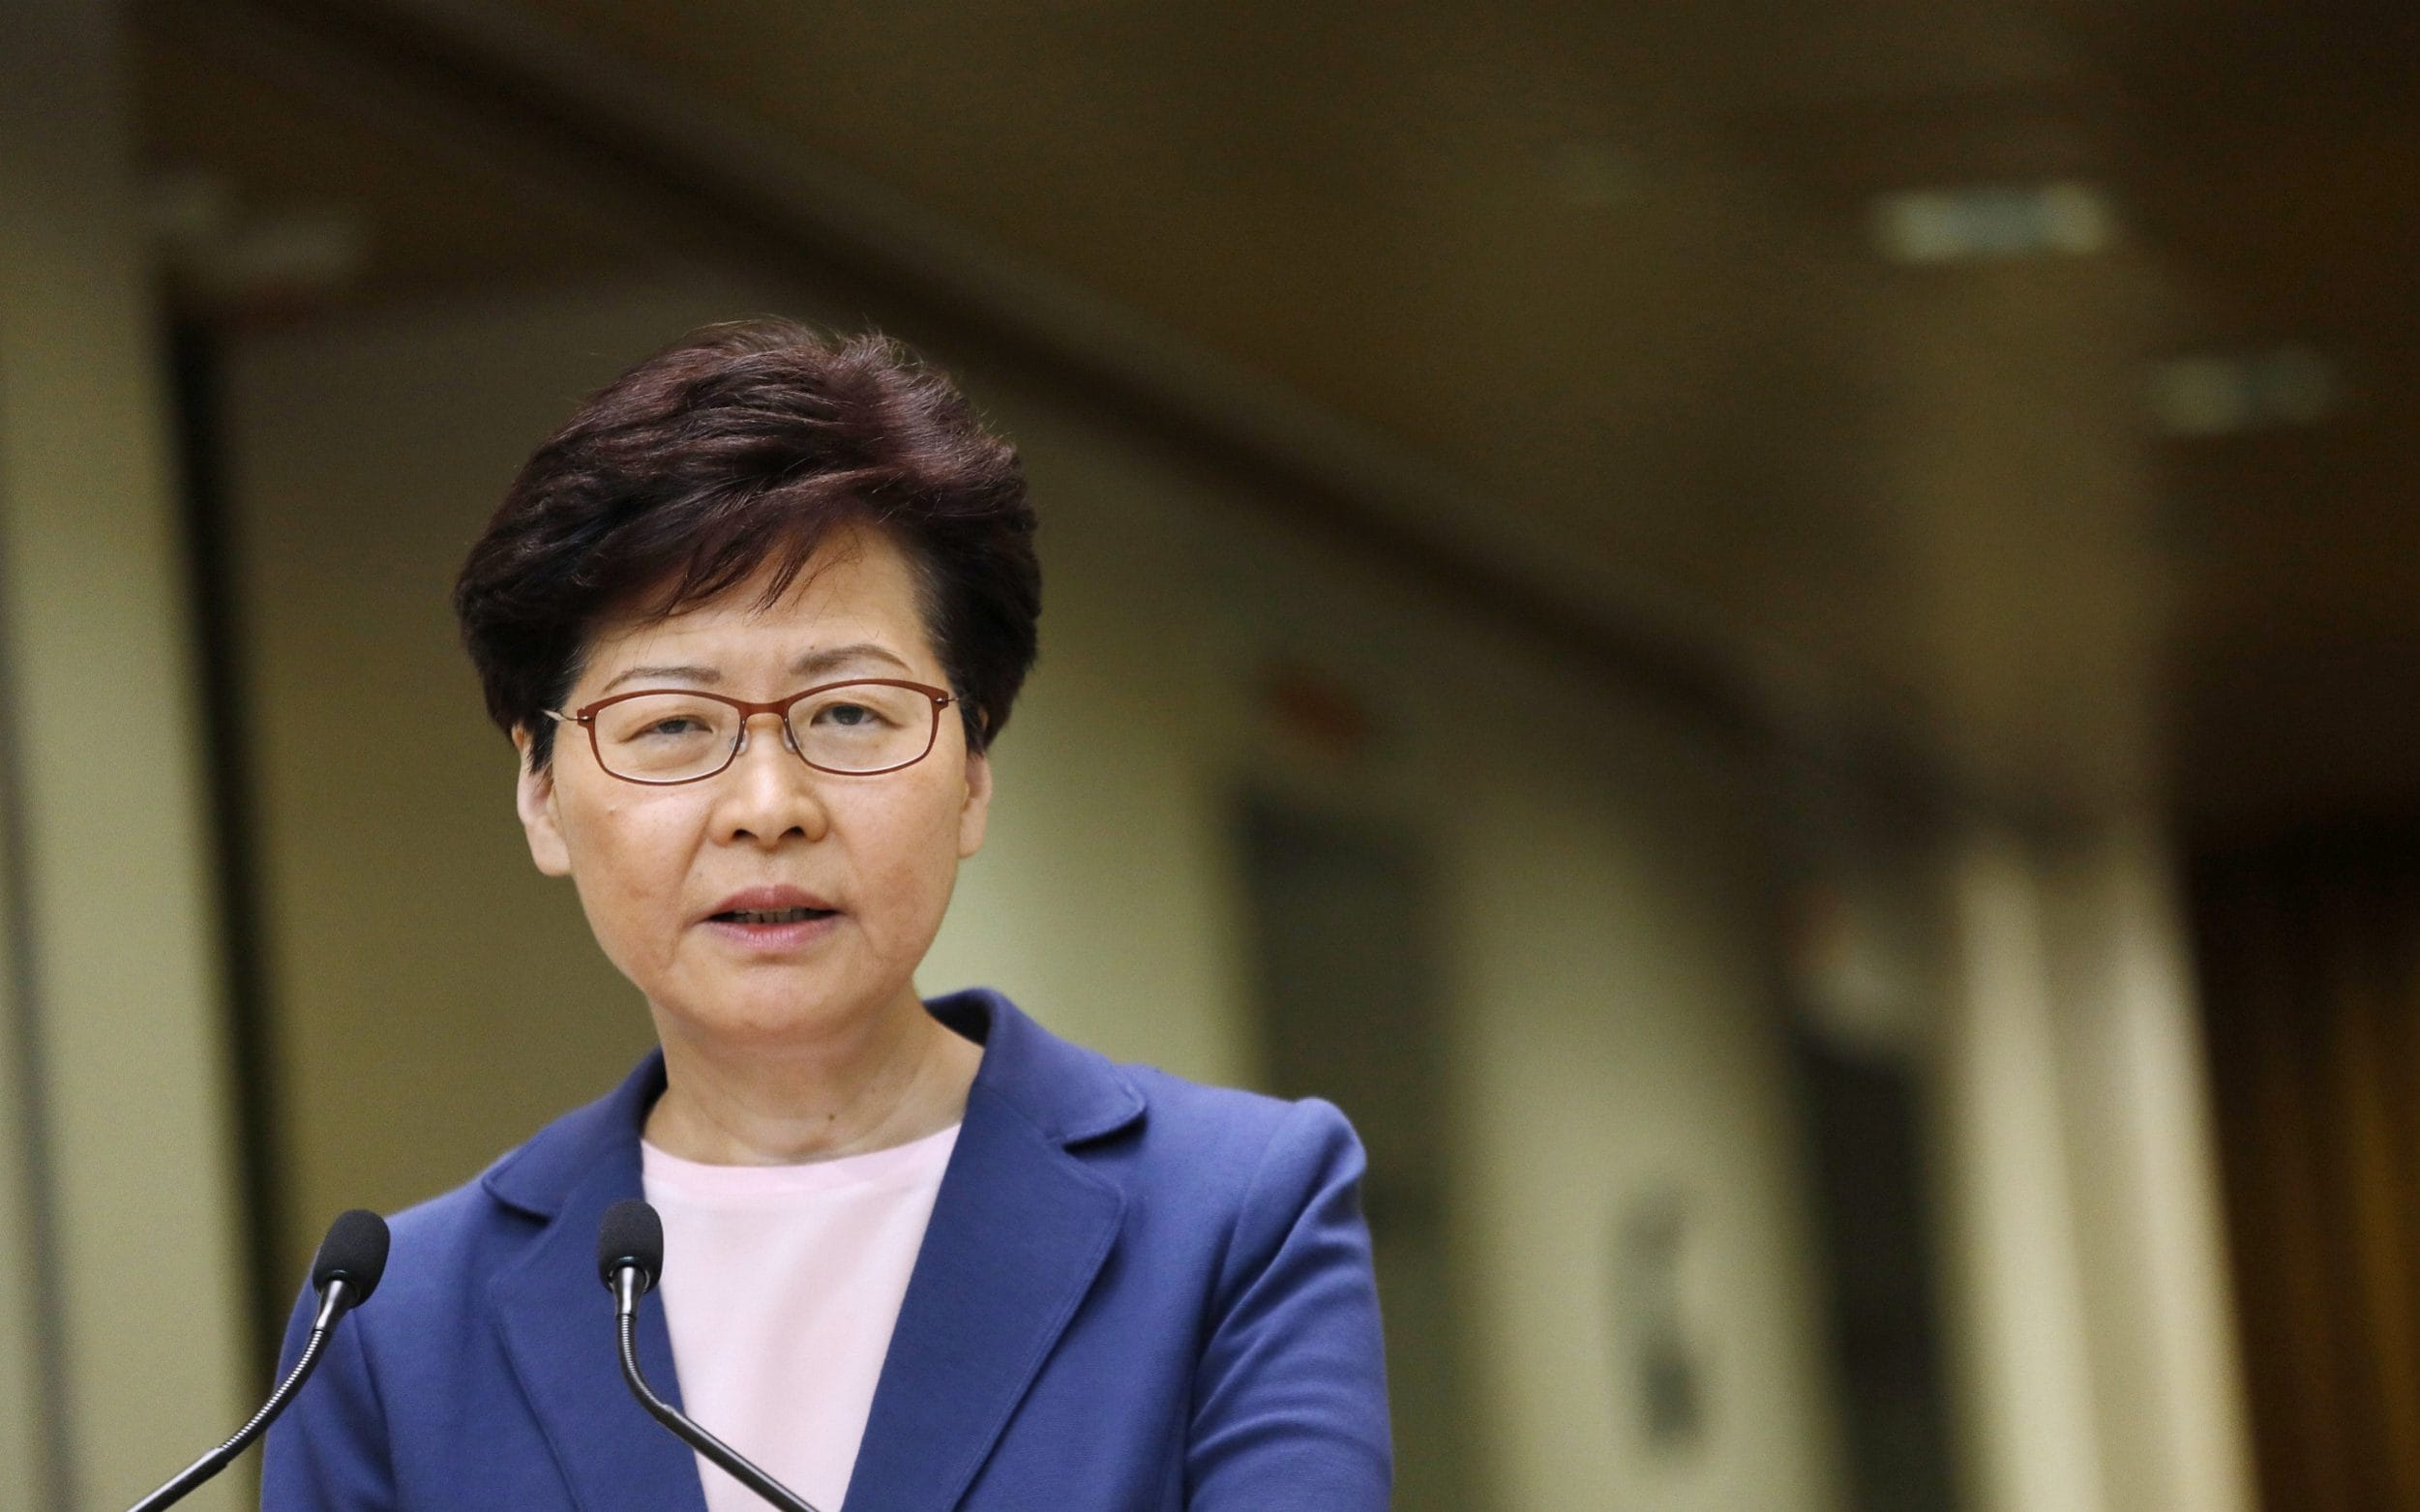 Hong Kong leader Carrie Lam declares extradition bill dead - but stops short of withdrawing it